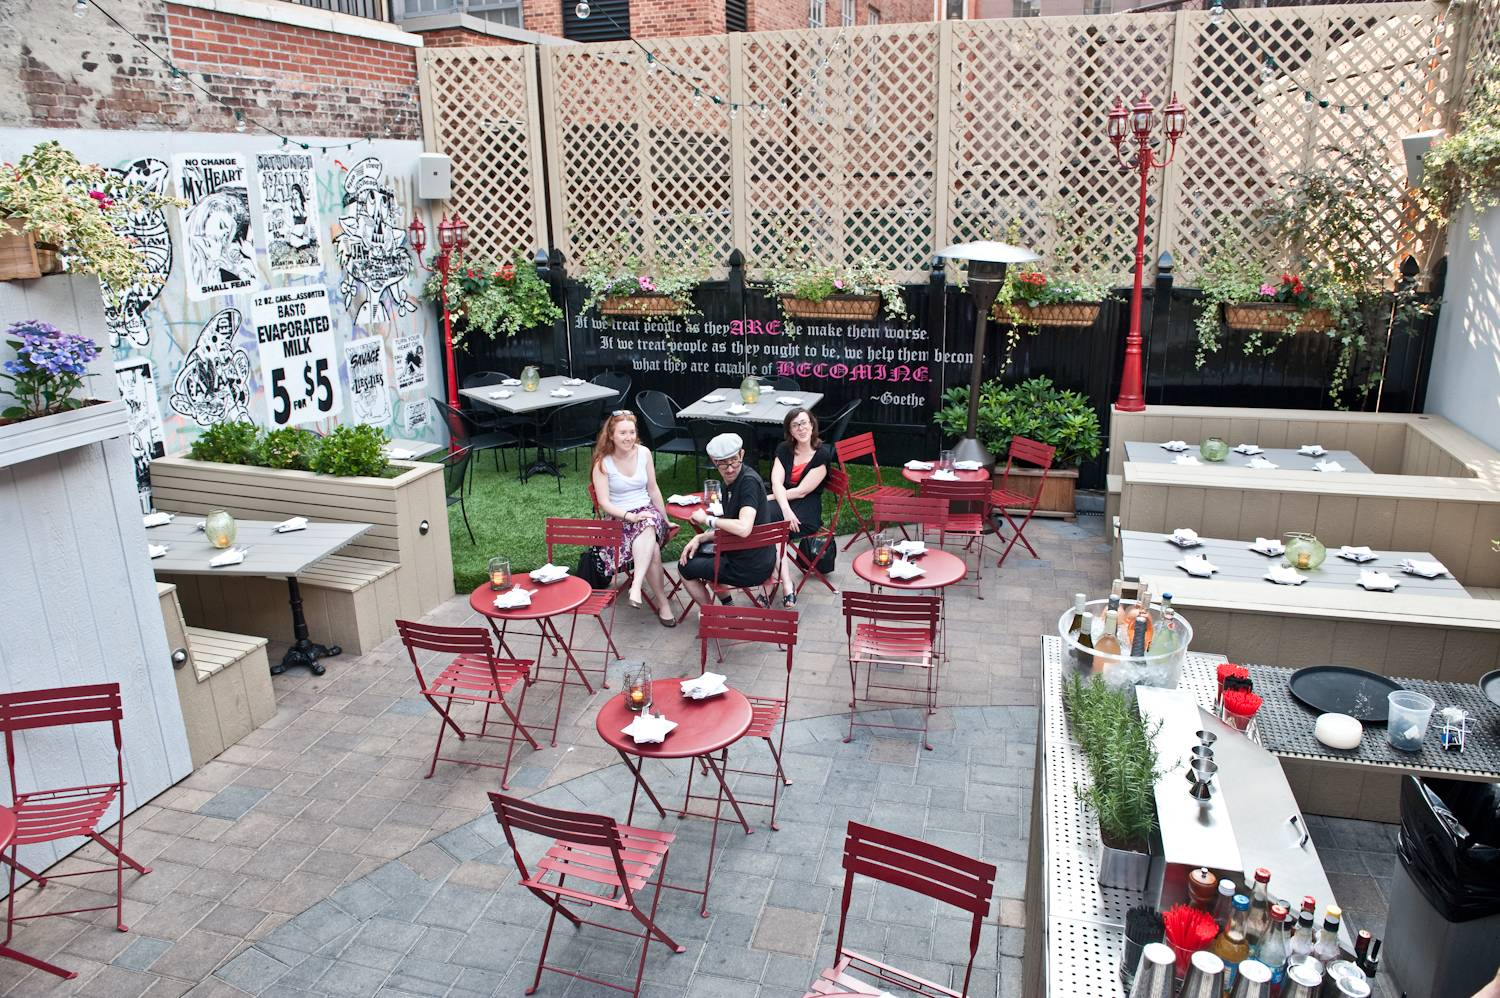 mulberry project new york Greenwich project mulberry project aunt jake's reserve online mulberry project 149 mulberry street, nyc (646) 448-4536 reservations | private events.